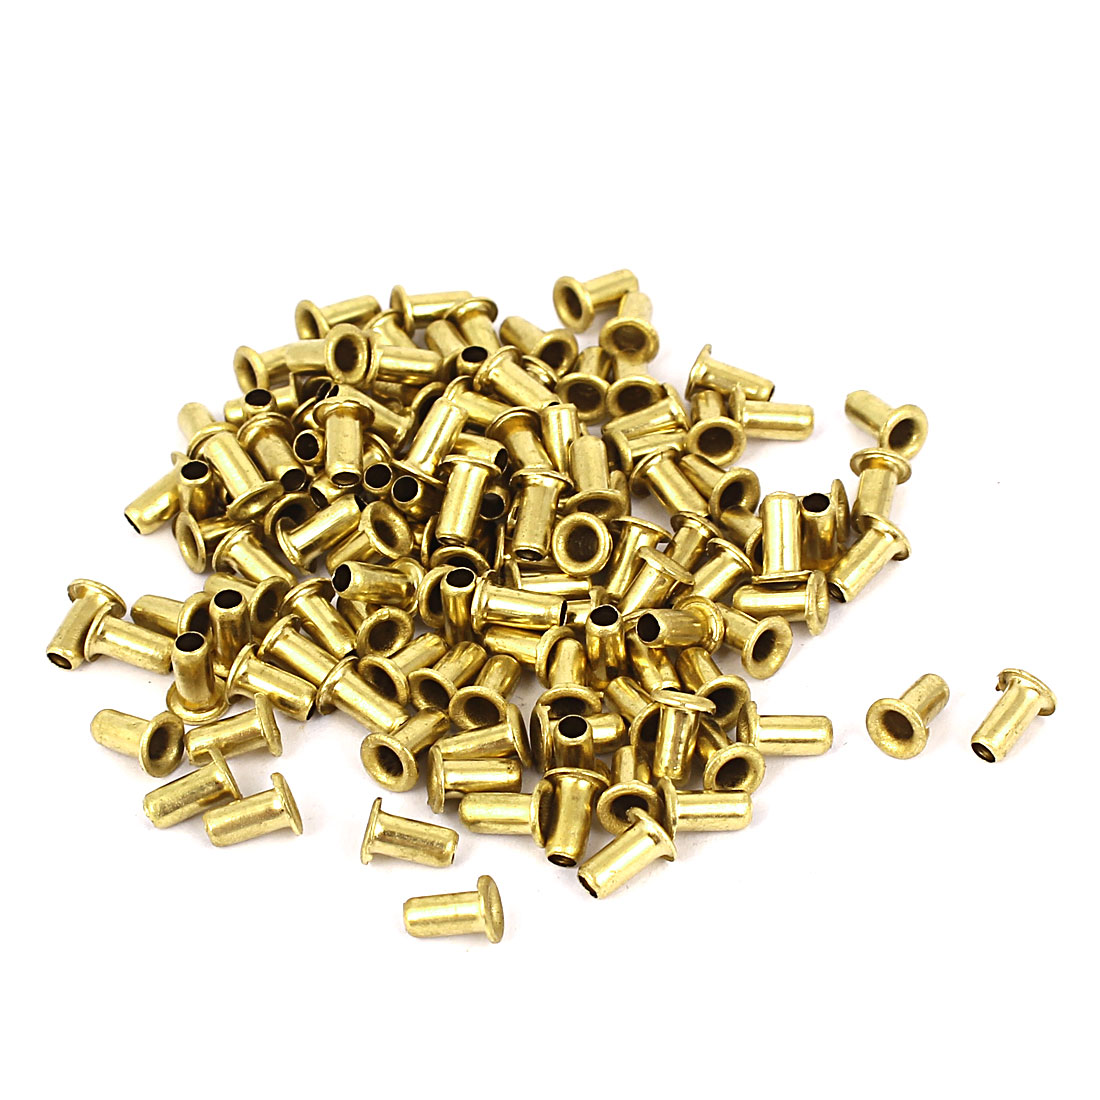 100pcs 3mm x 6mm Brass Plated Rivets Hollow Grommets PCB Circuit Board